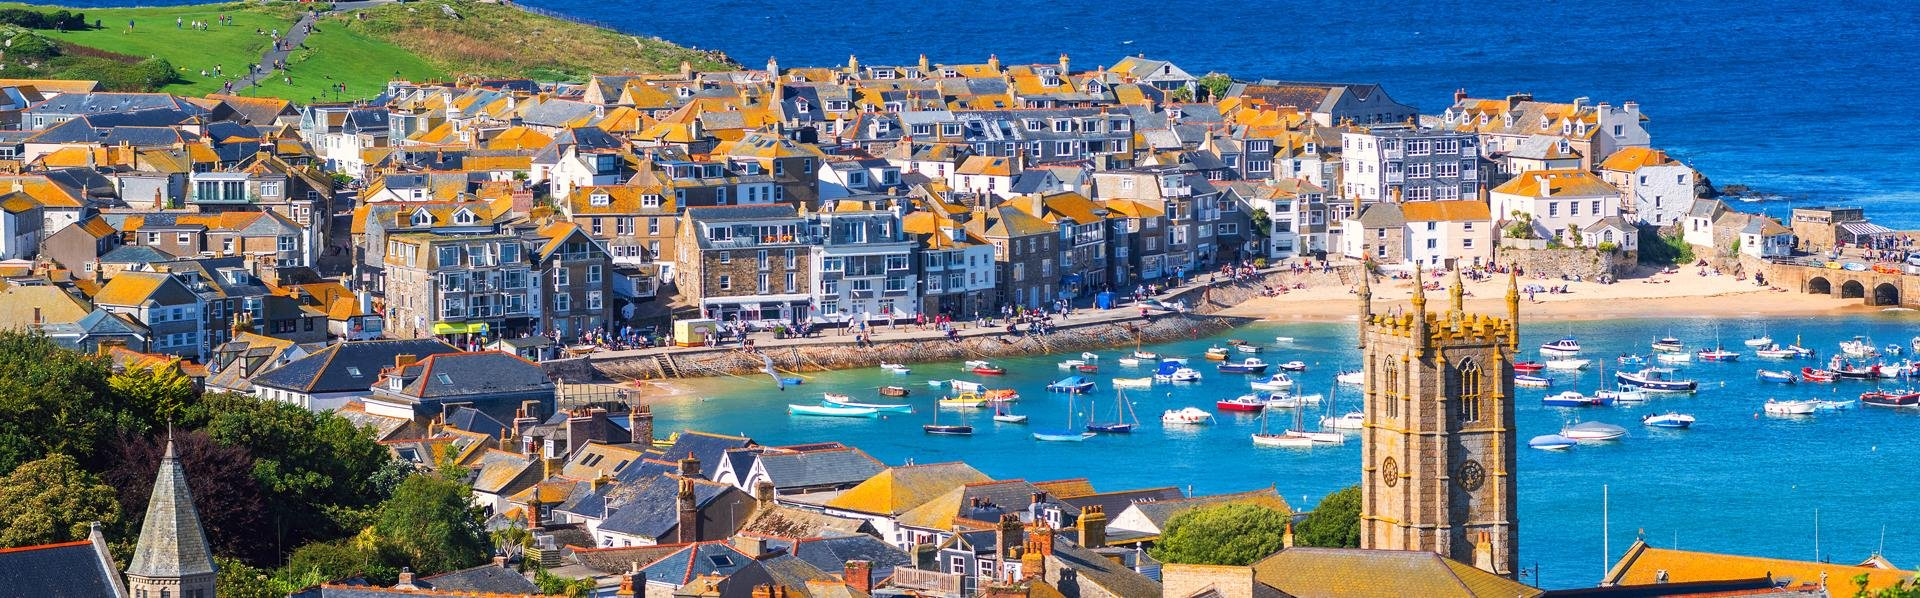 St. Ives in Groot-Brittannië